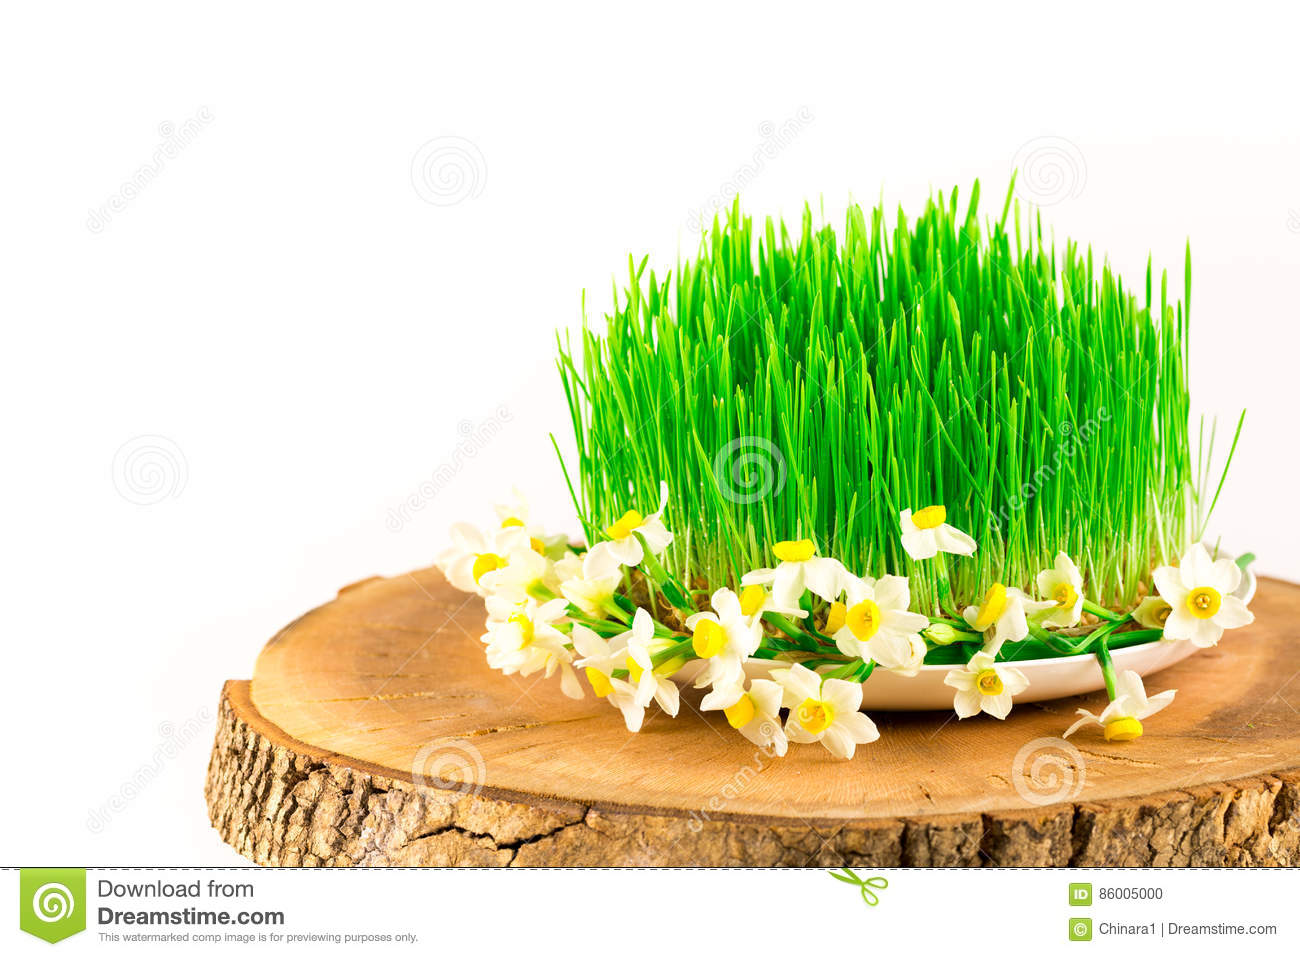 Green semeni on wooden stump, decorated with tiny daffodils